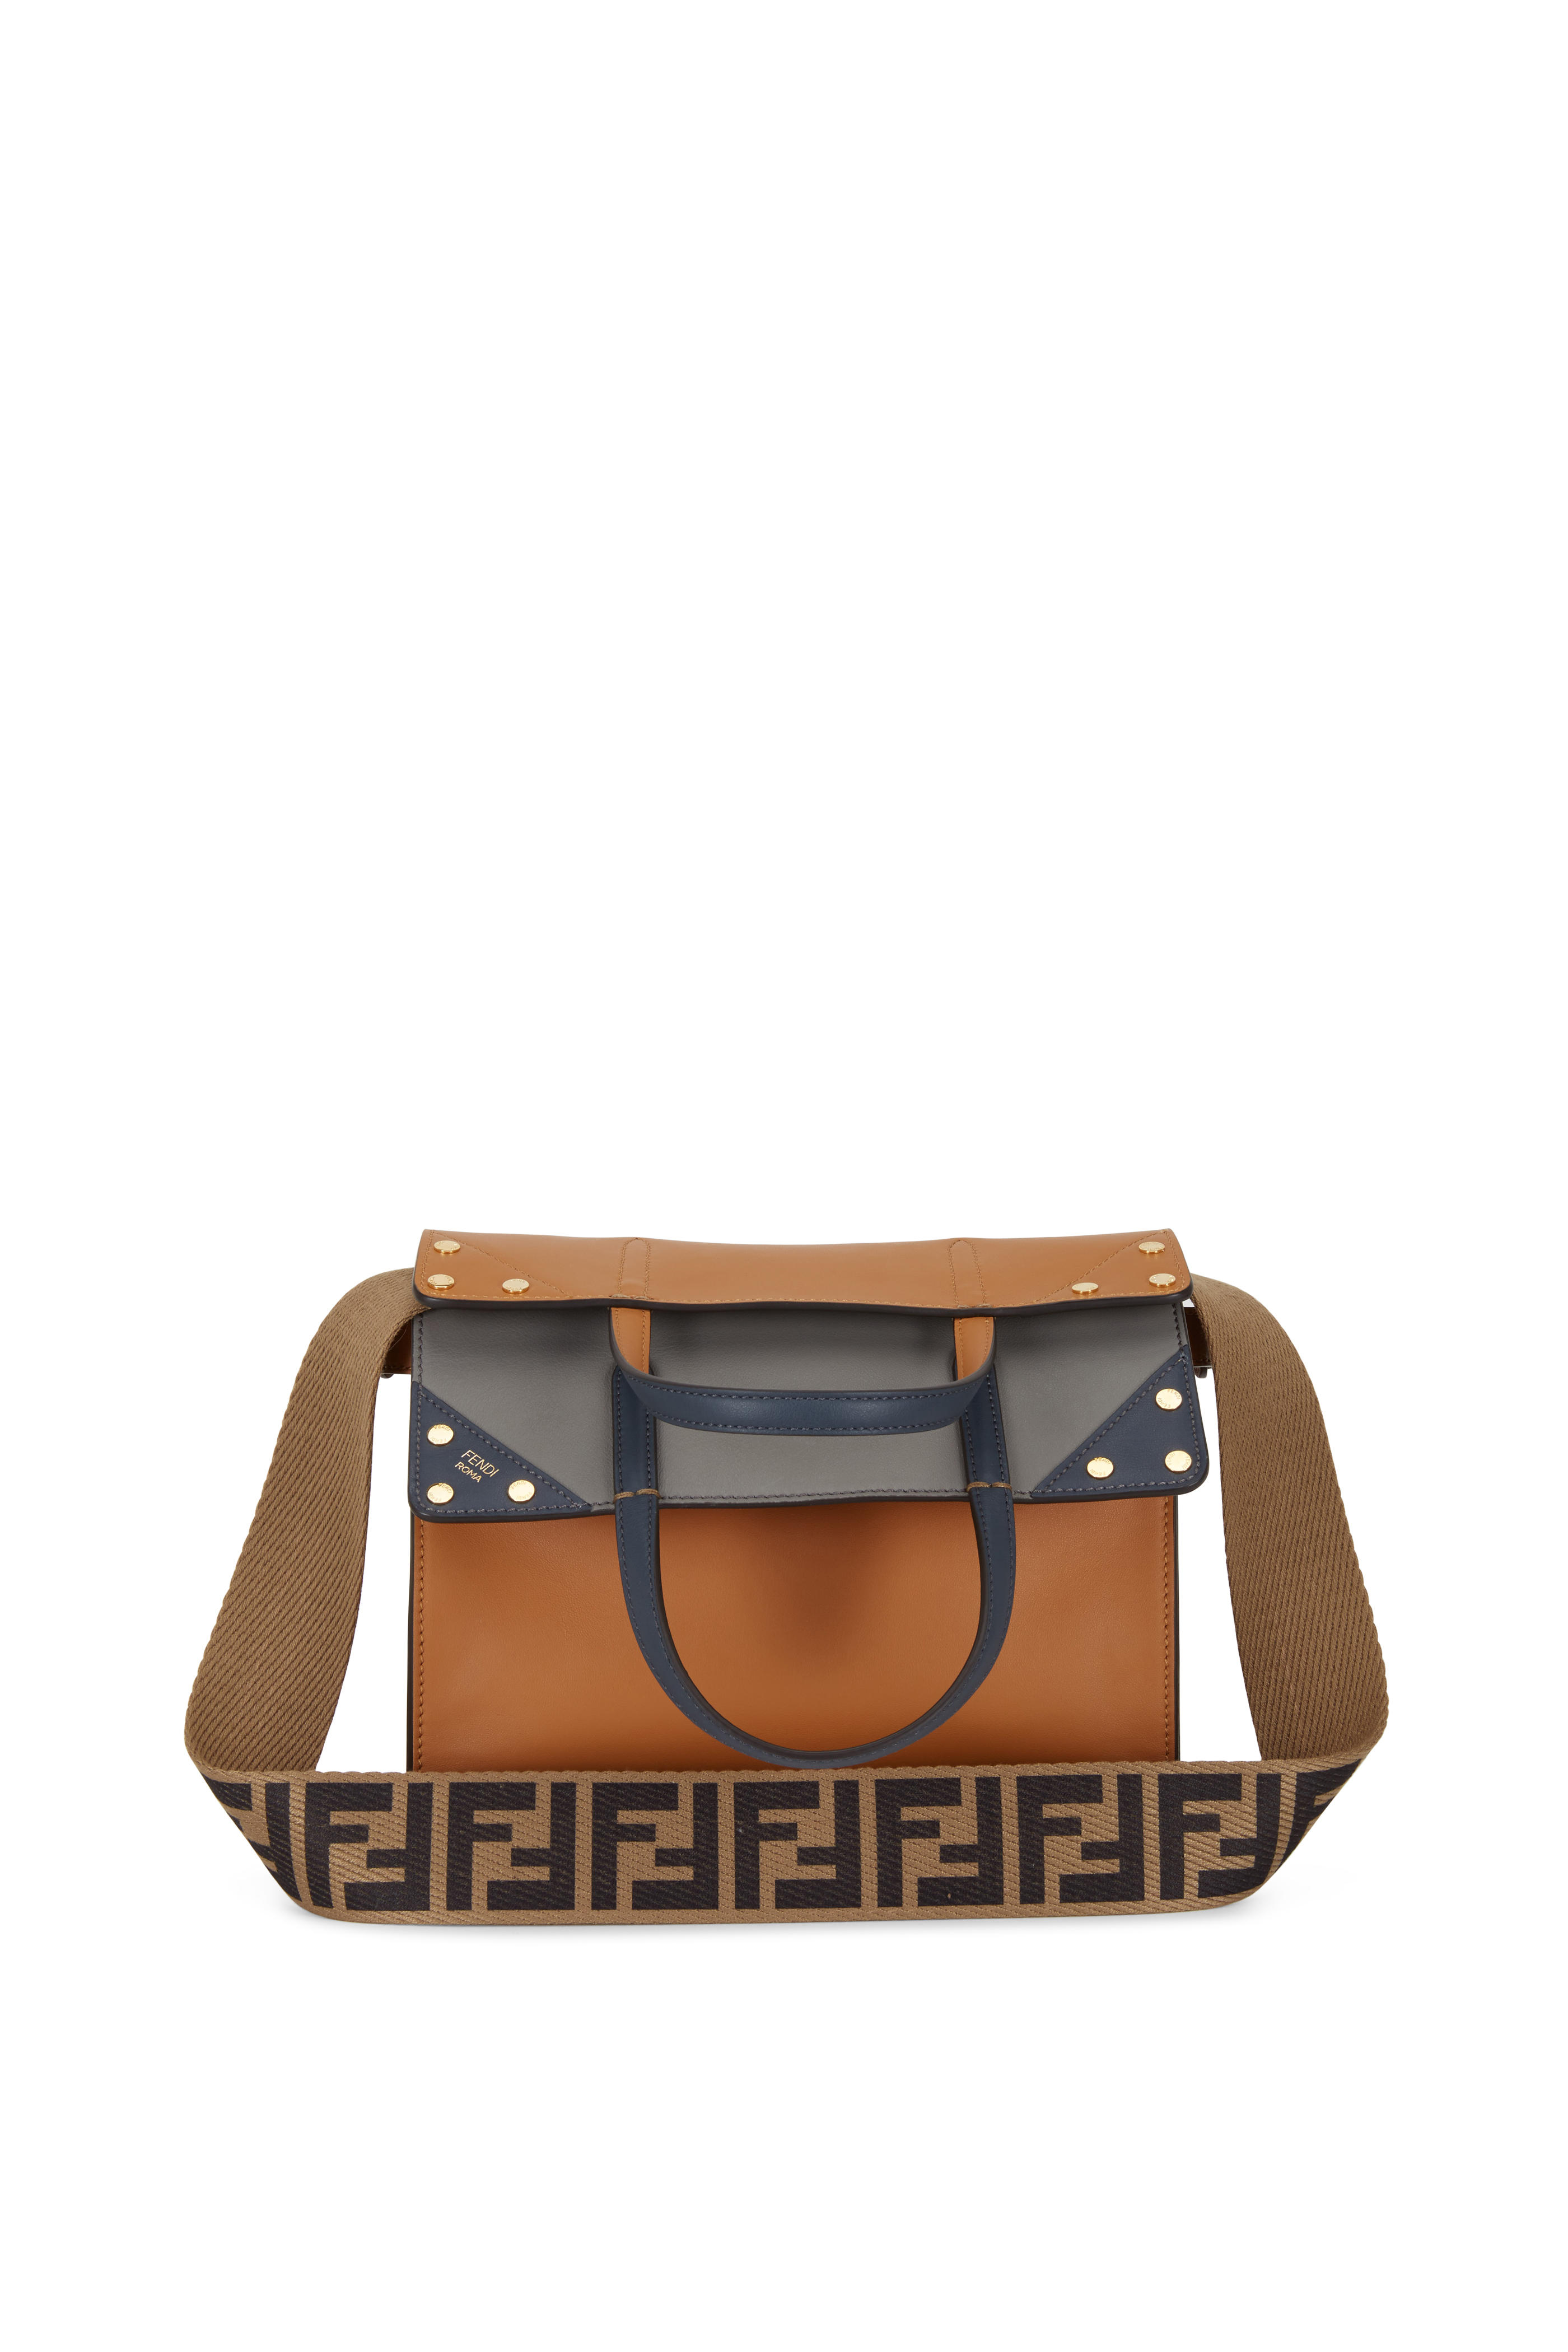 922b0aef Fendi - Flip Cognac & Gray Leather Small Bag | Mitchell Stores